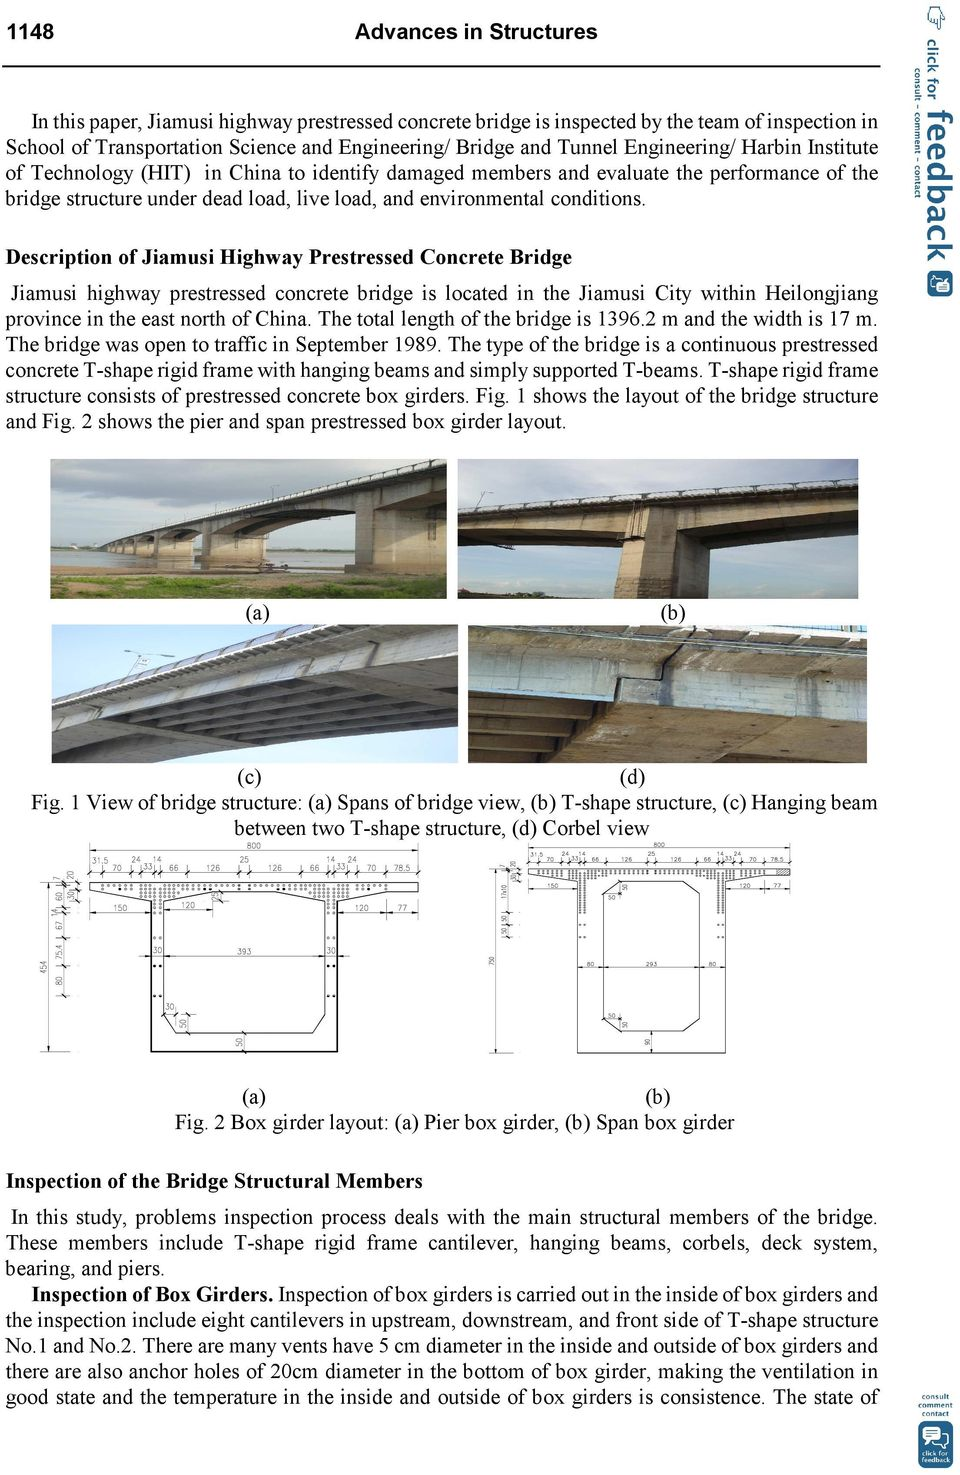 Description of Jiamusi Highway Prestressed Concrete Bridge Jiamusi highway prestressed concrete bridge is located in the Jiamusi City within Heilongjiang province in the east north of China.